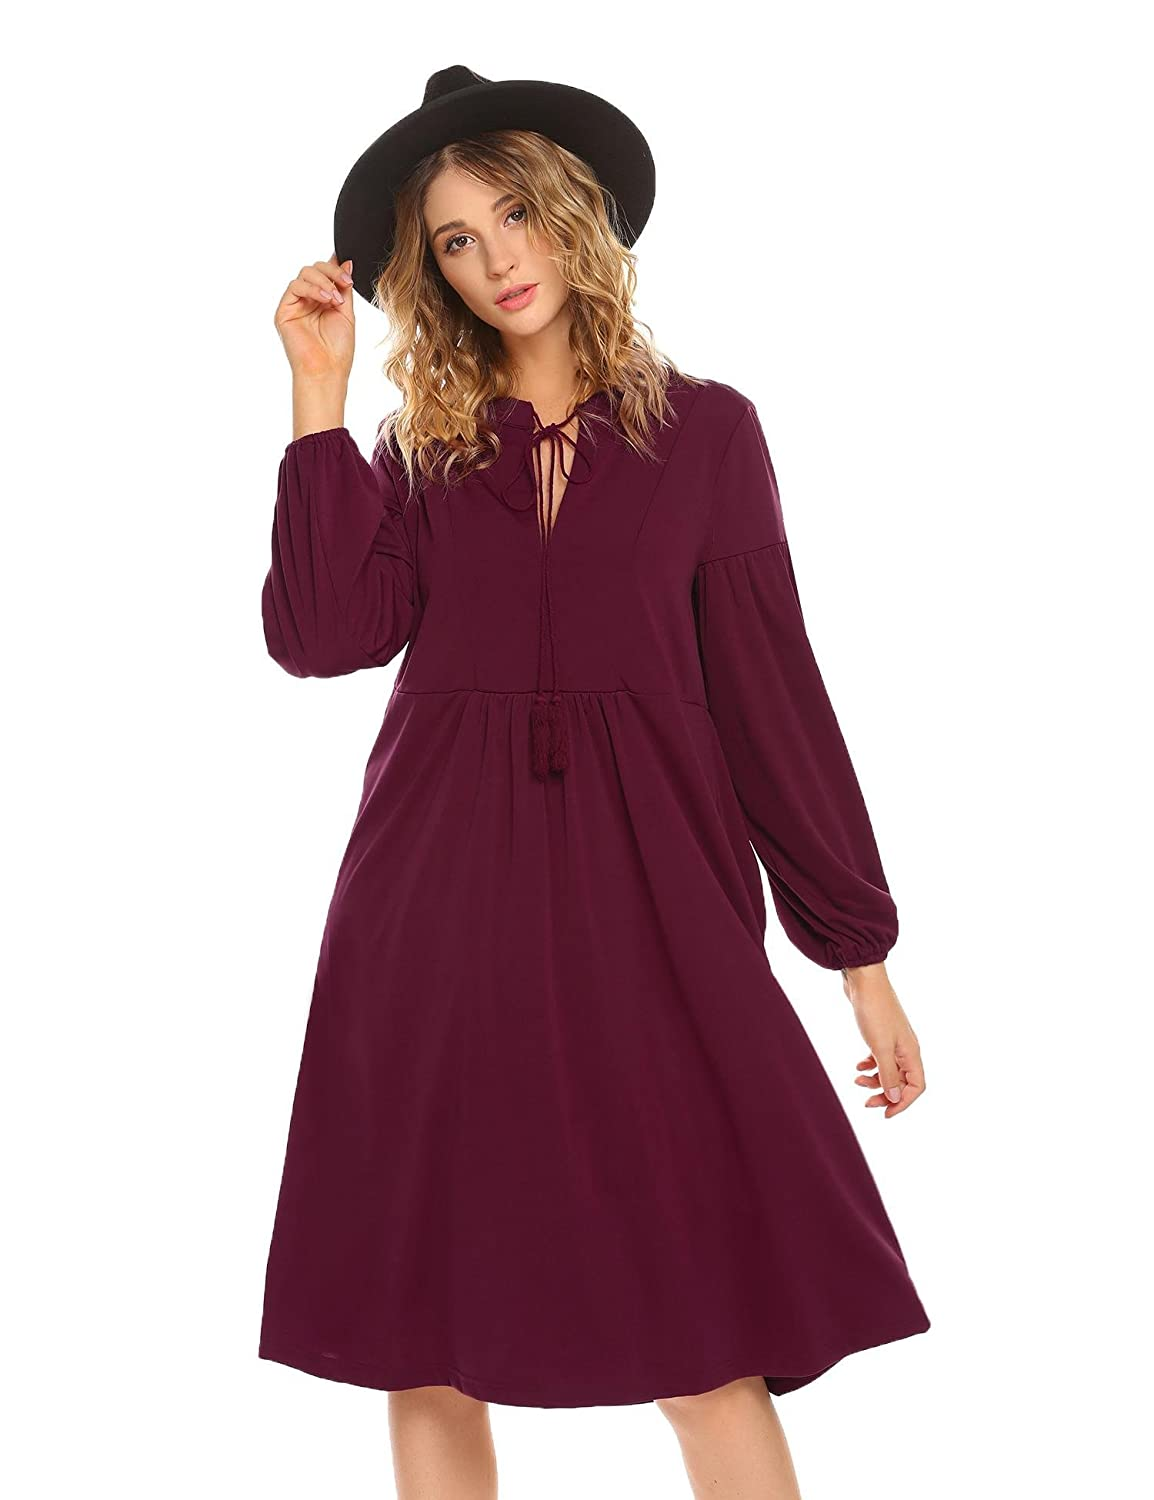 Meaneor Women's V-Neck Long Sleeve Casual Swing Loose T-Shirt Tunic Dress ##MAH023504